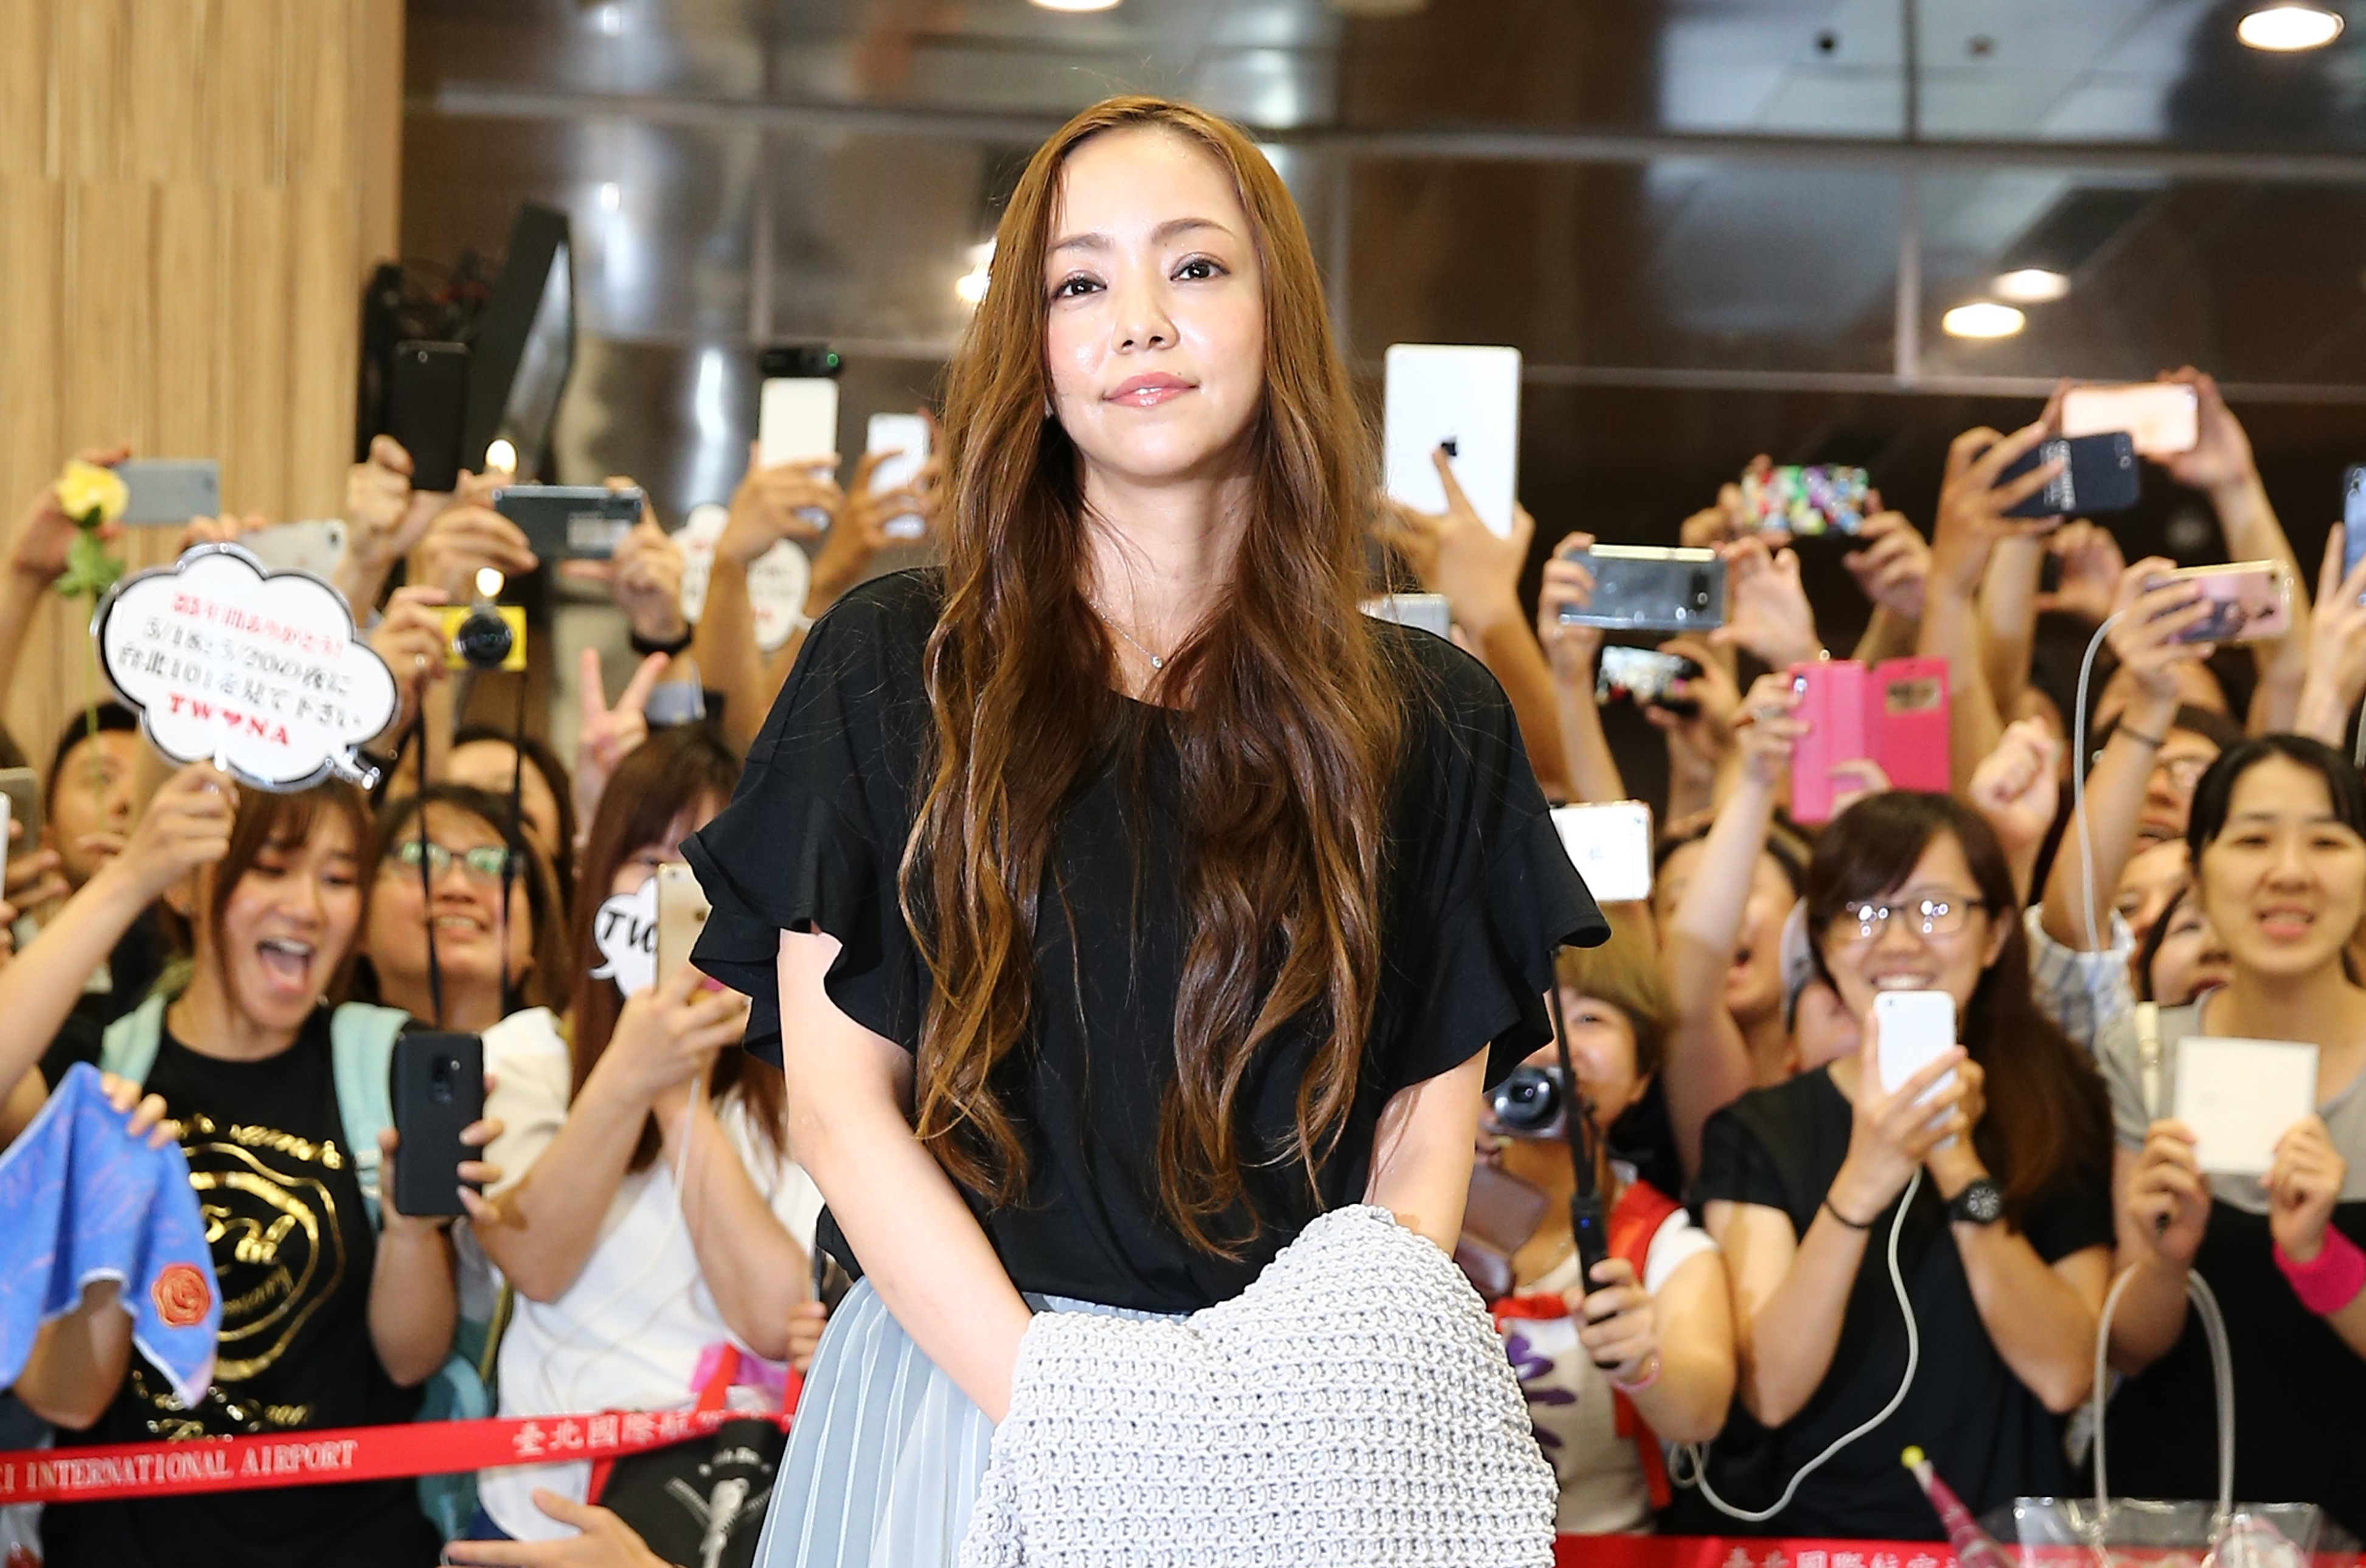 Singer Namie Amuro arrives at Taipei Songshan Airport for 'Namie Amuro Final Tour 2018 - Finally ~ in Asia' on May 17, 2018 in Taipei, Taiwan.